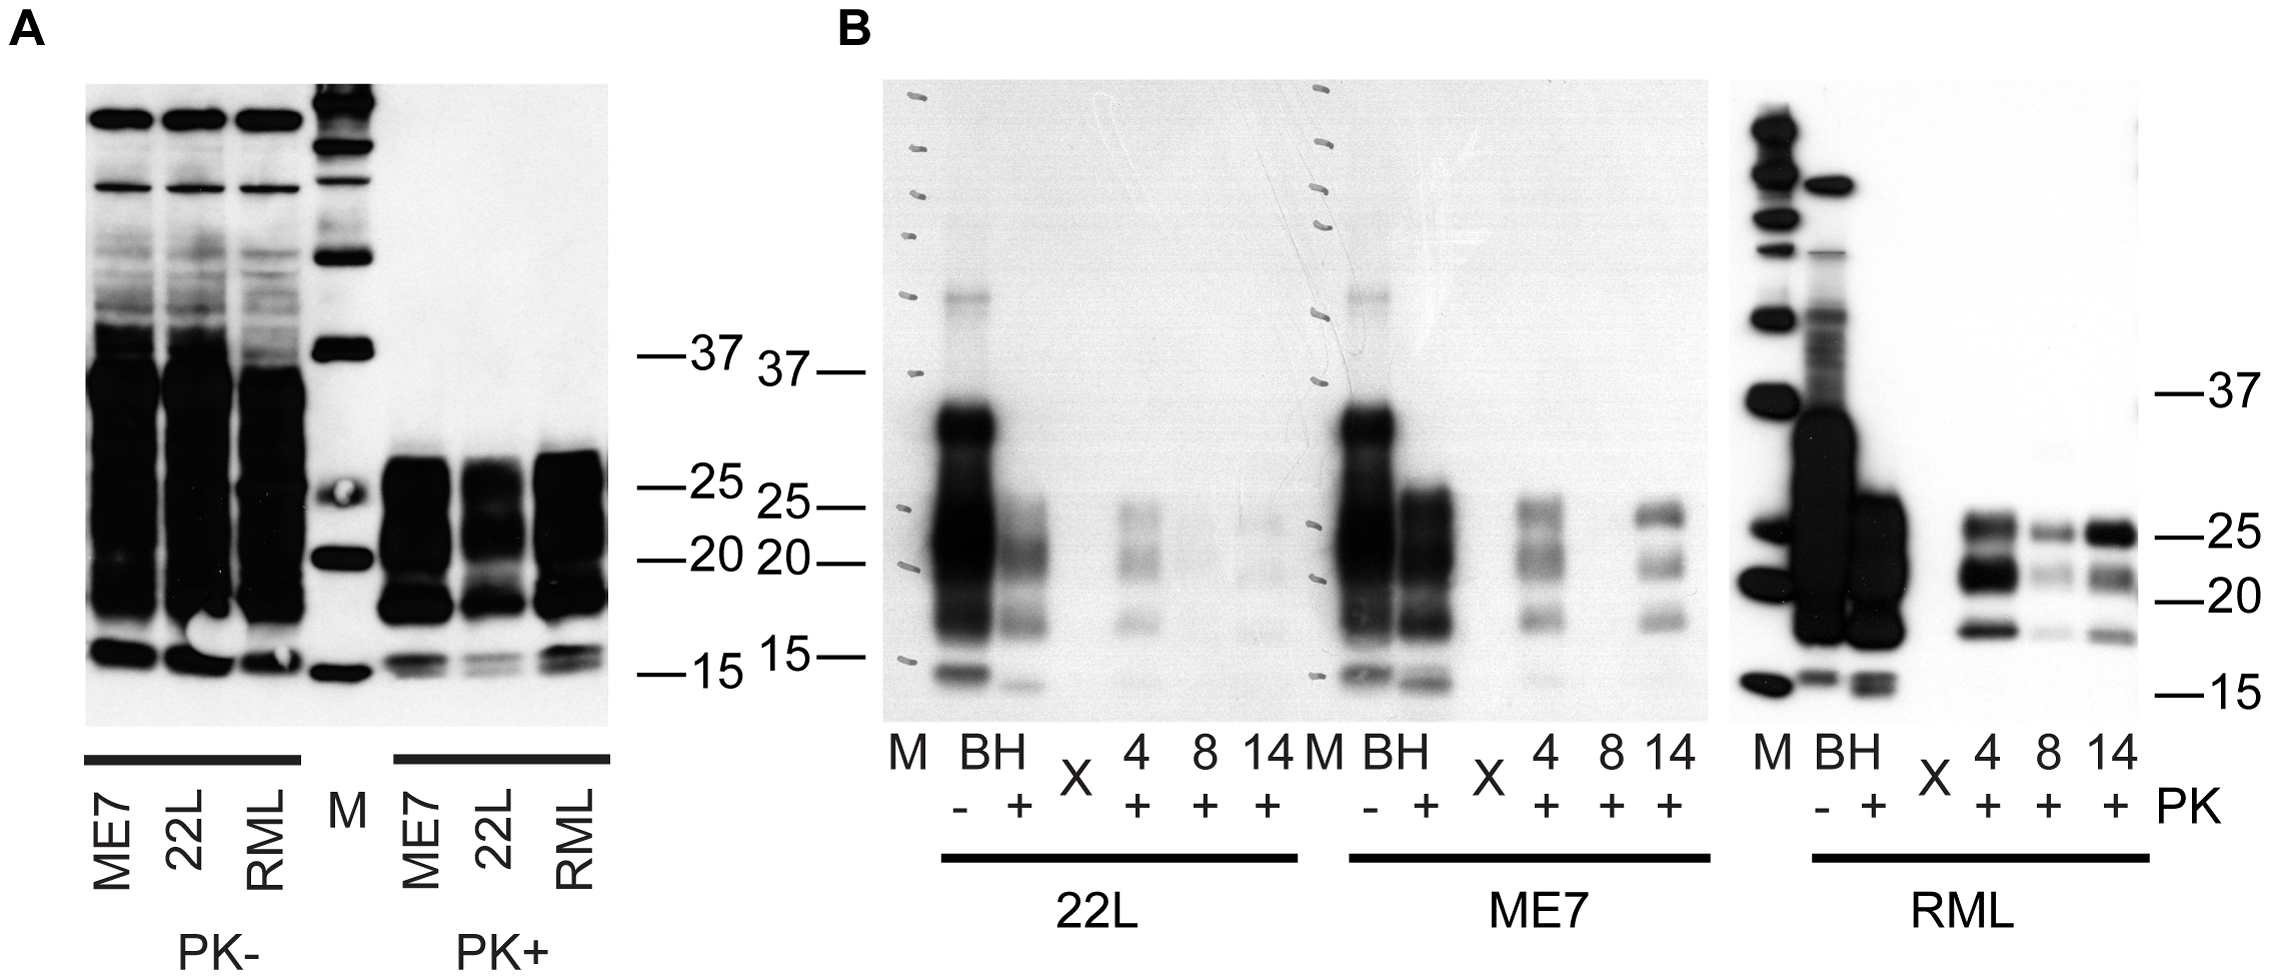 C2C12 myotubes are also susceptible to 22L and ME7 prions.